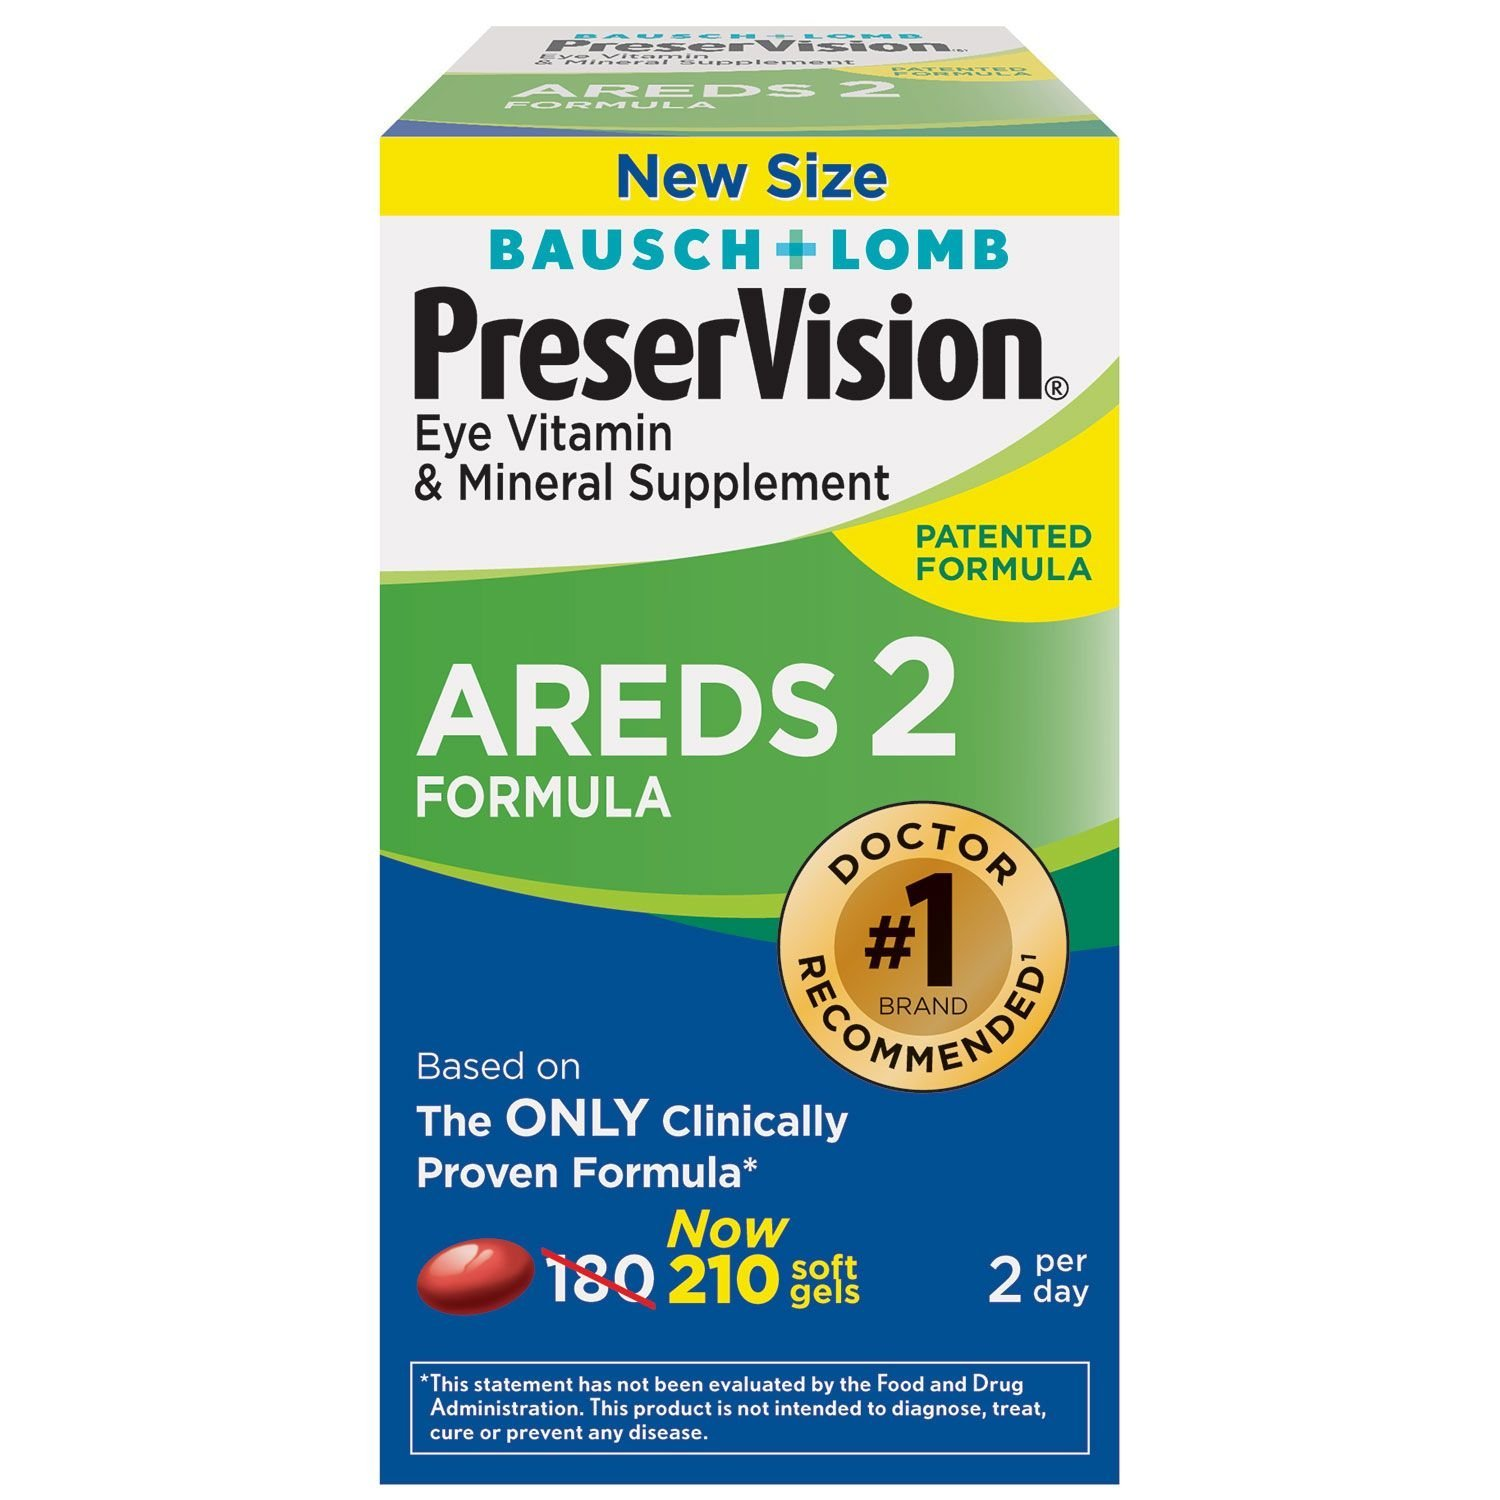 Bausch & Lomb PreserVision AREDS 2 Formula Supplement (210ct) by PreserVision